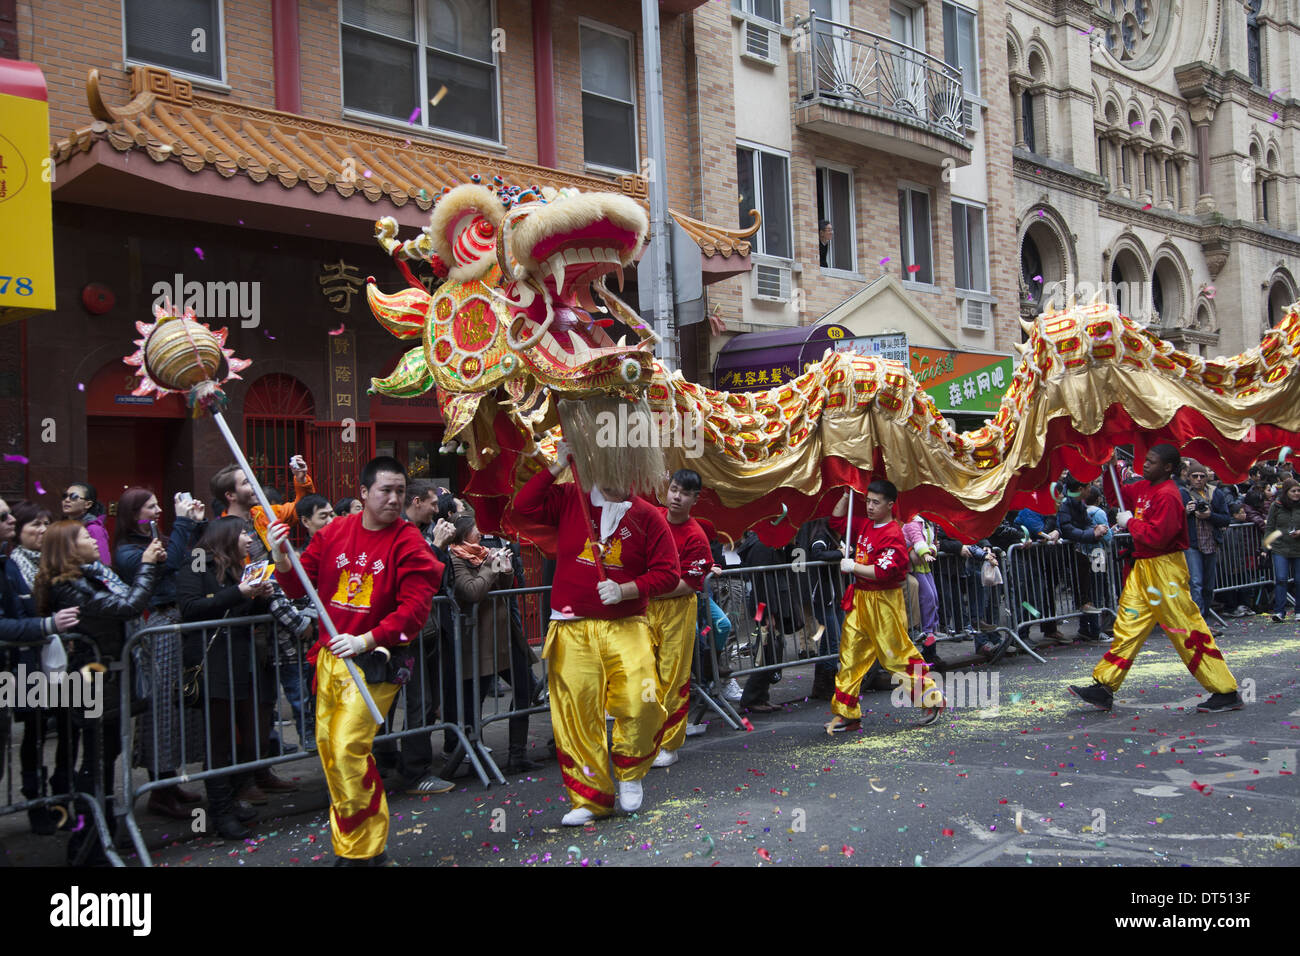 Dragon dancers are a highlight of the Chinese New Year Parade in Chinatown, New York City. - Stock Image